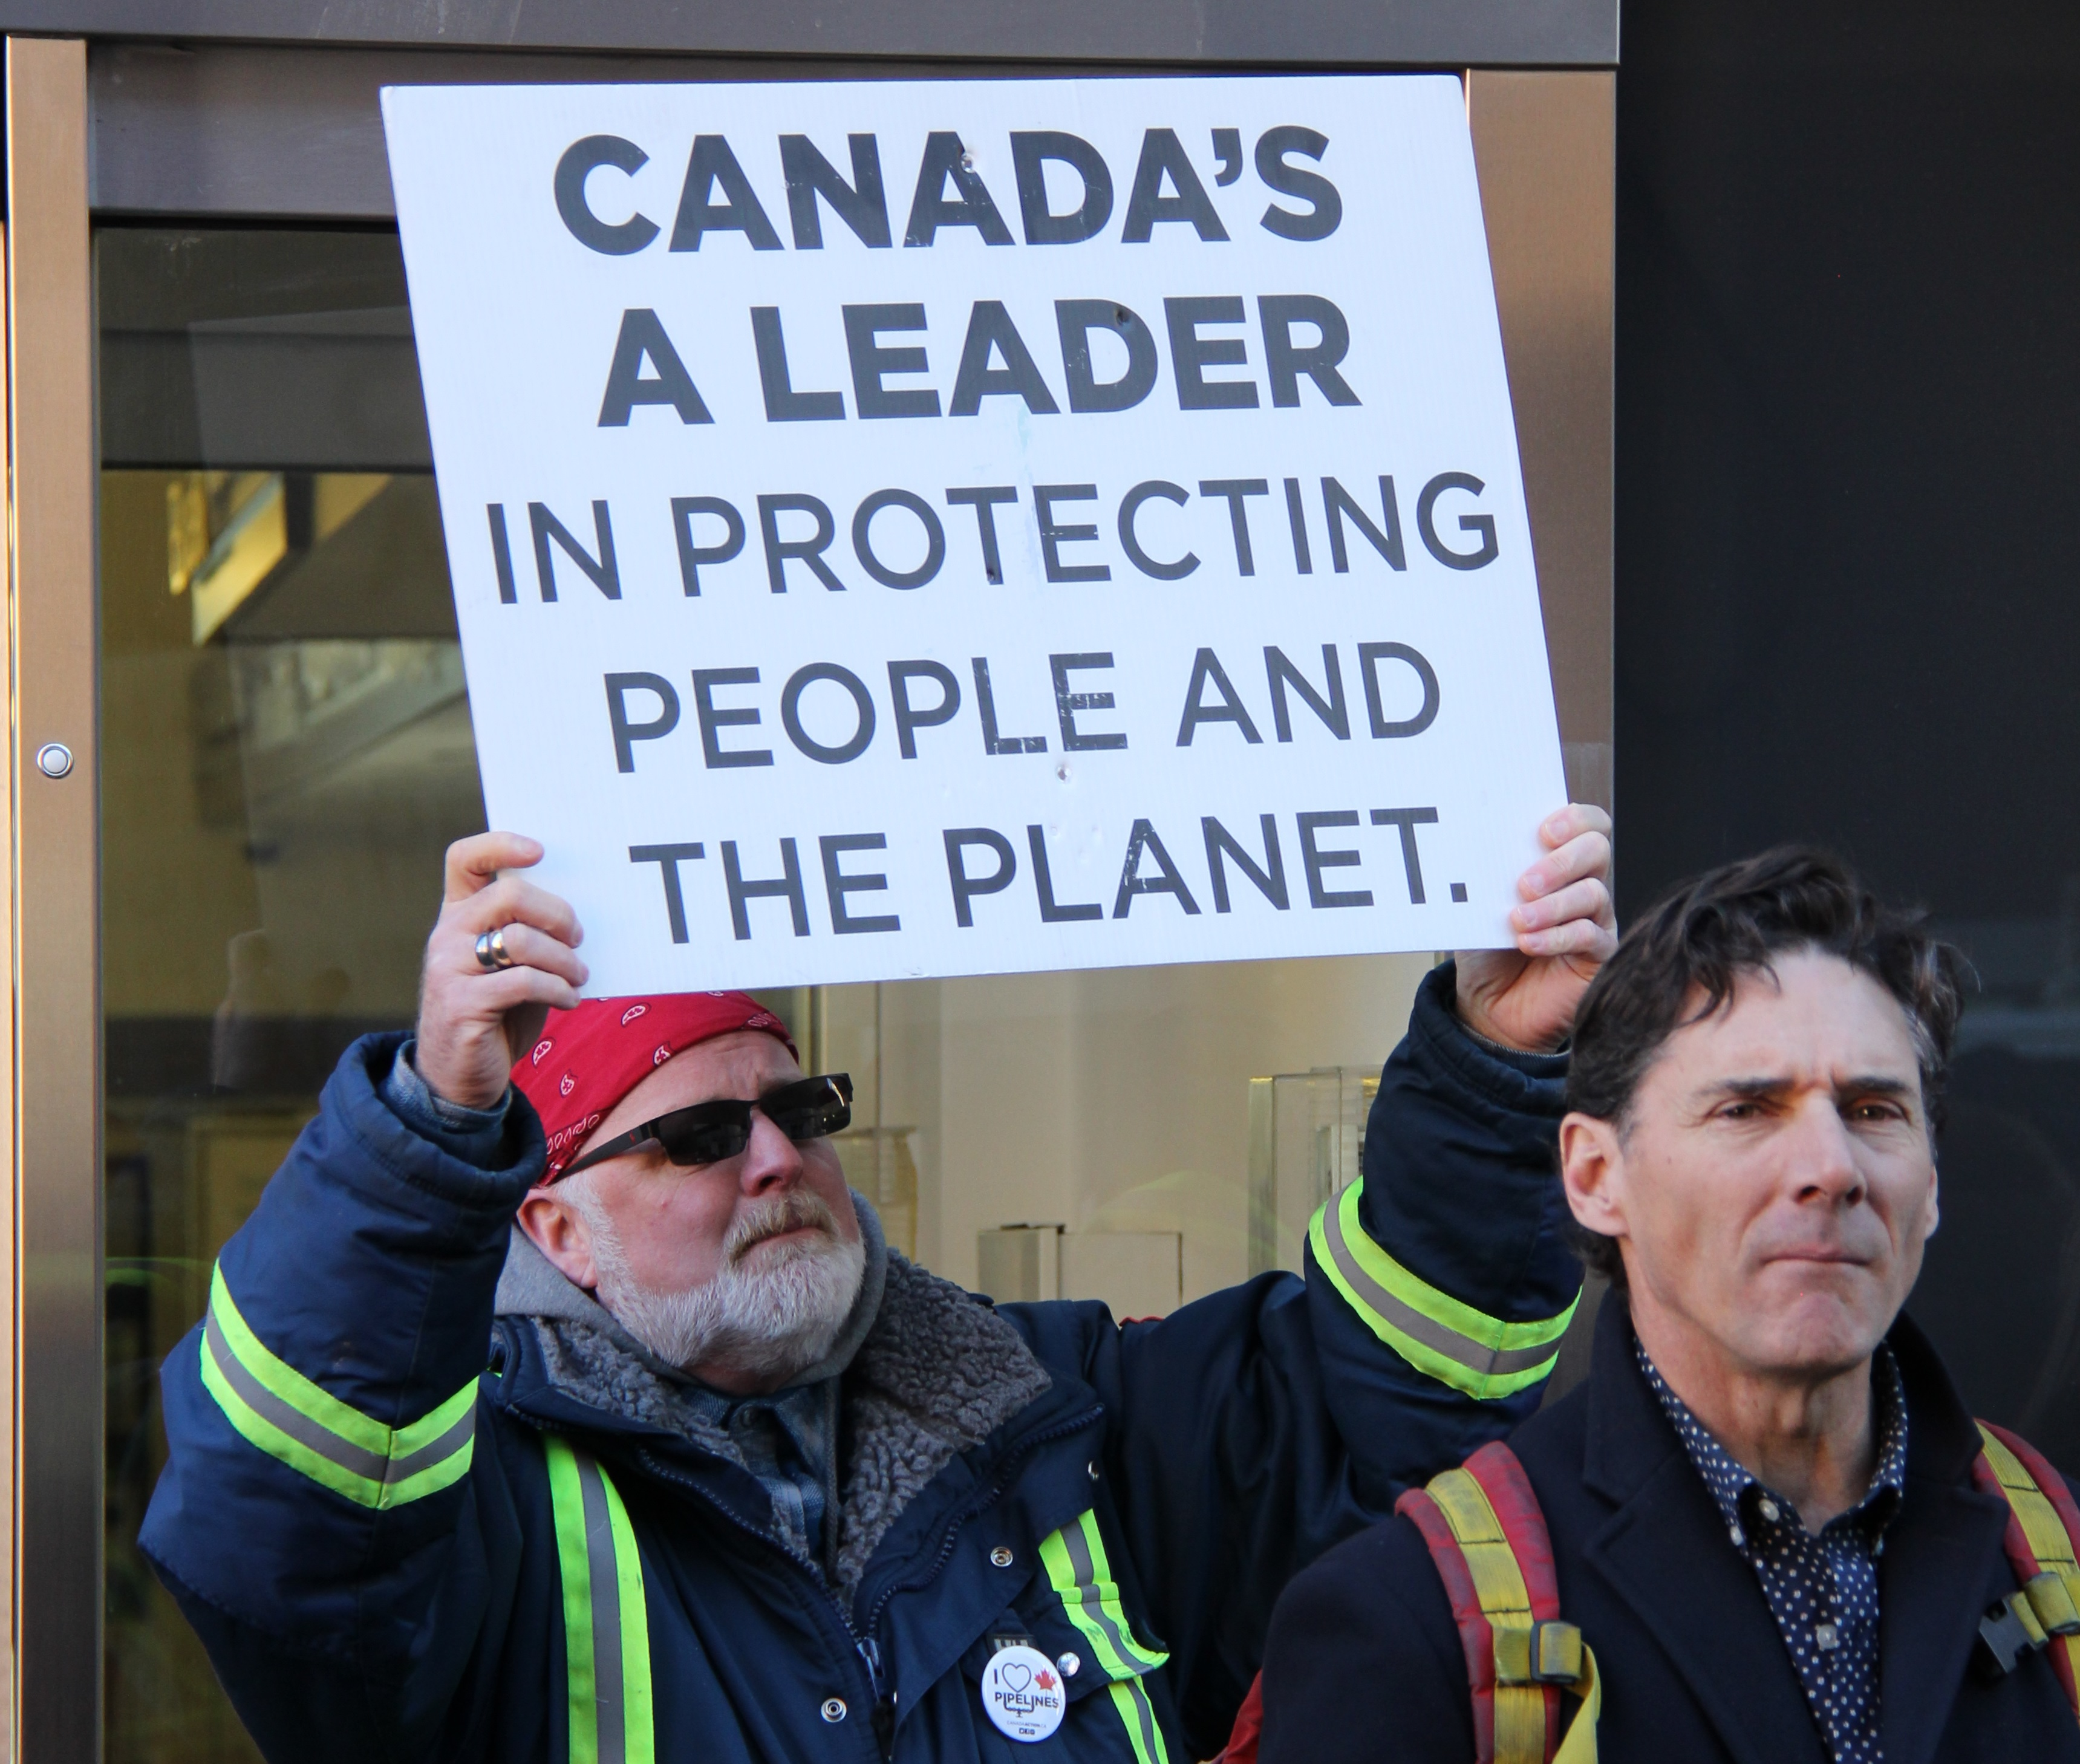 Canada is a leader in ESG metrics & protecting people and the planet